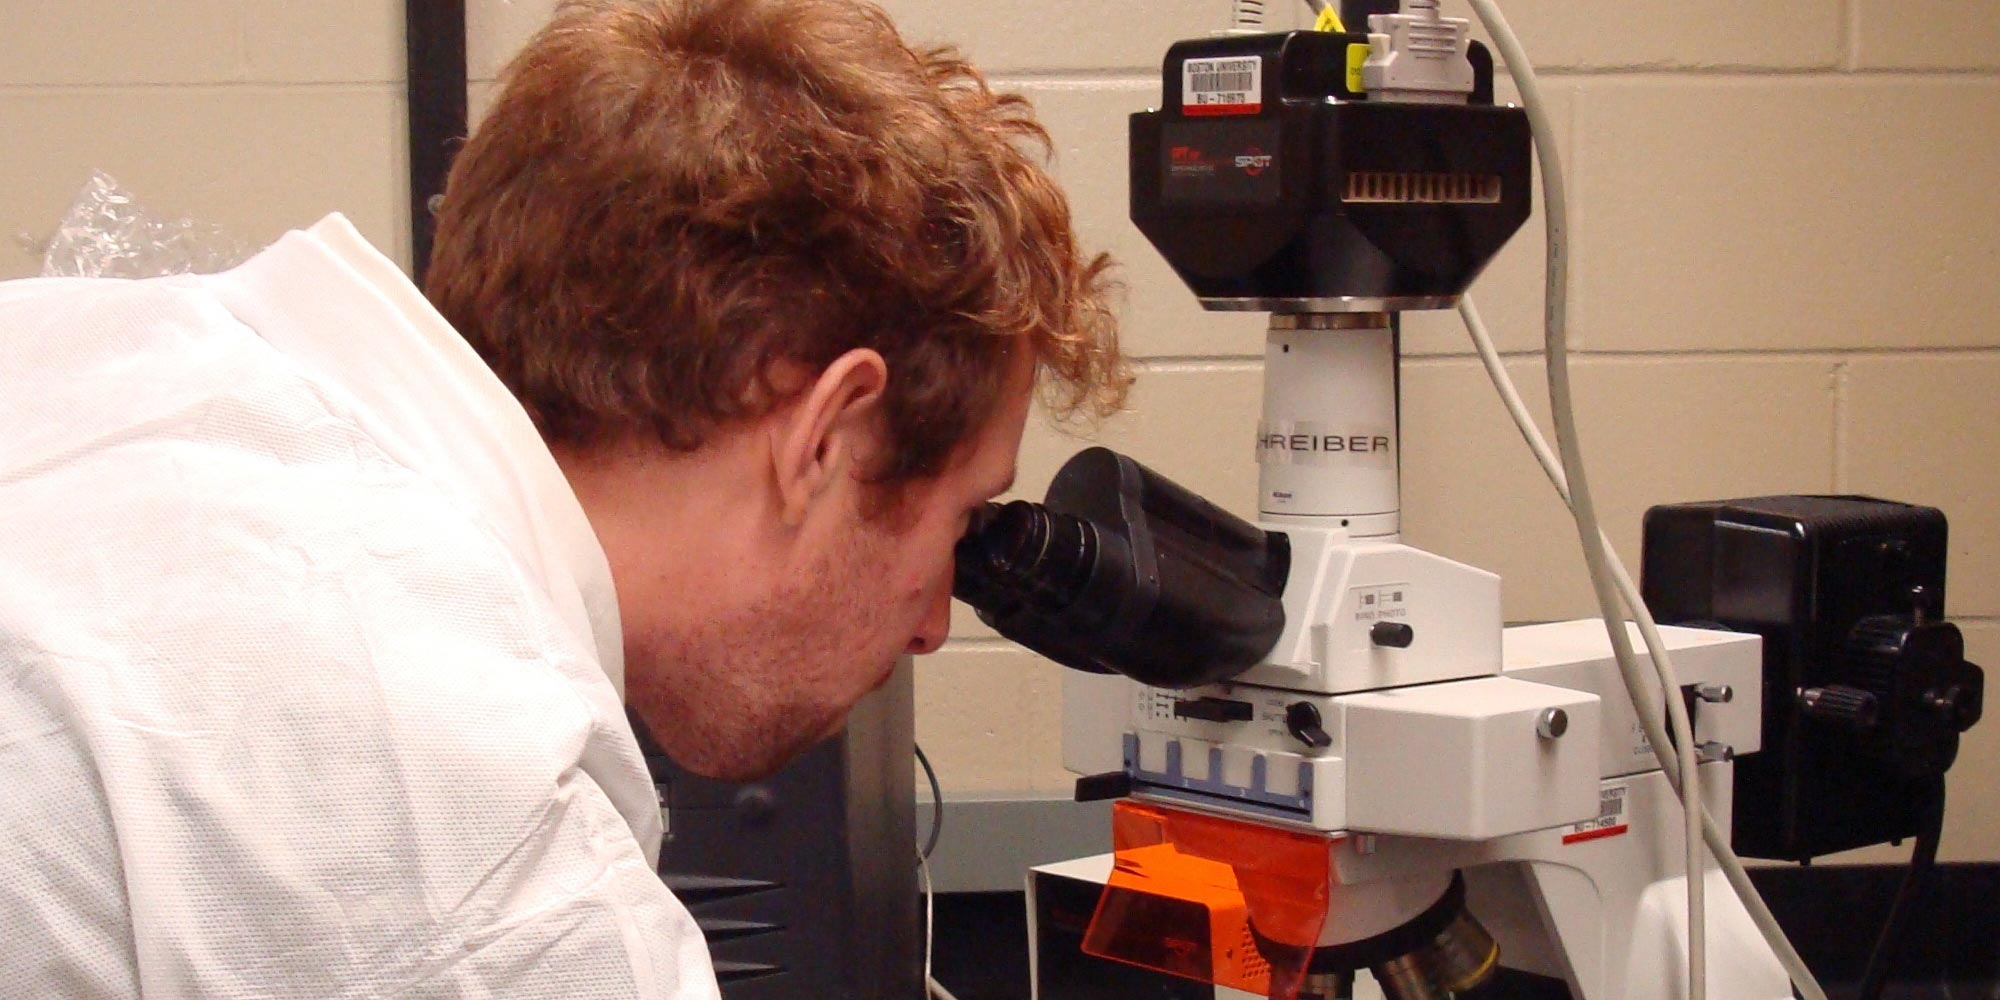 researcher_at_microscope_